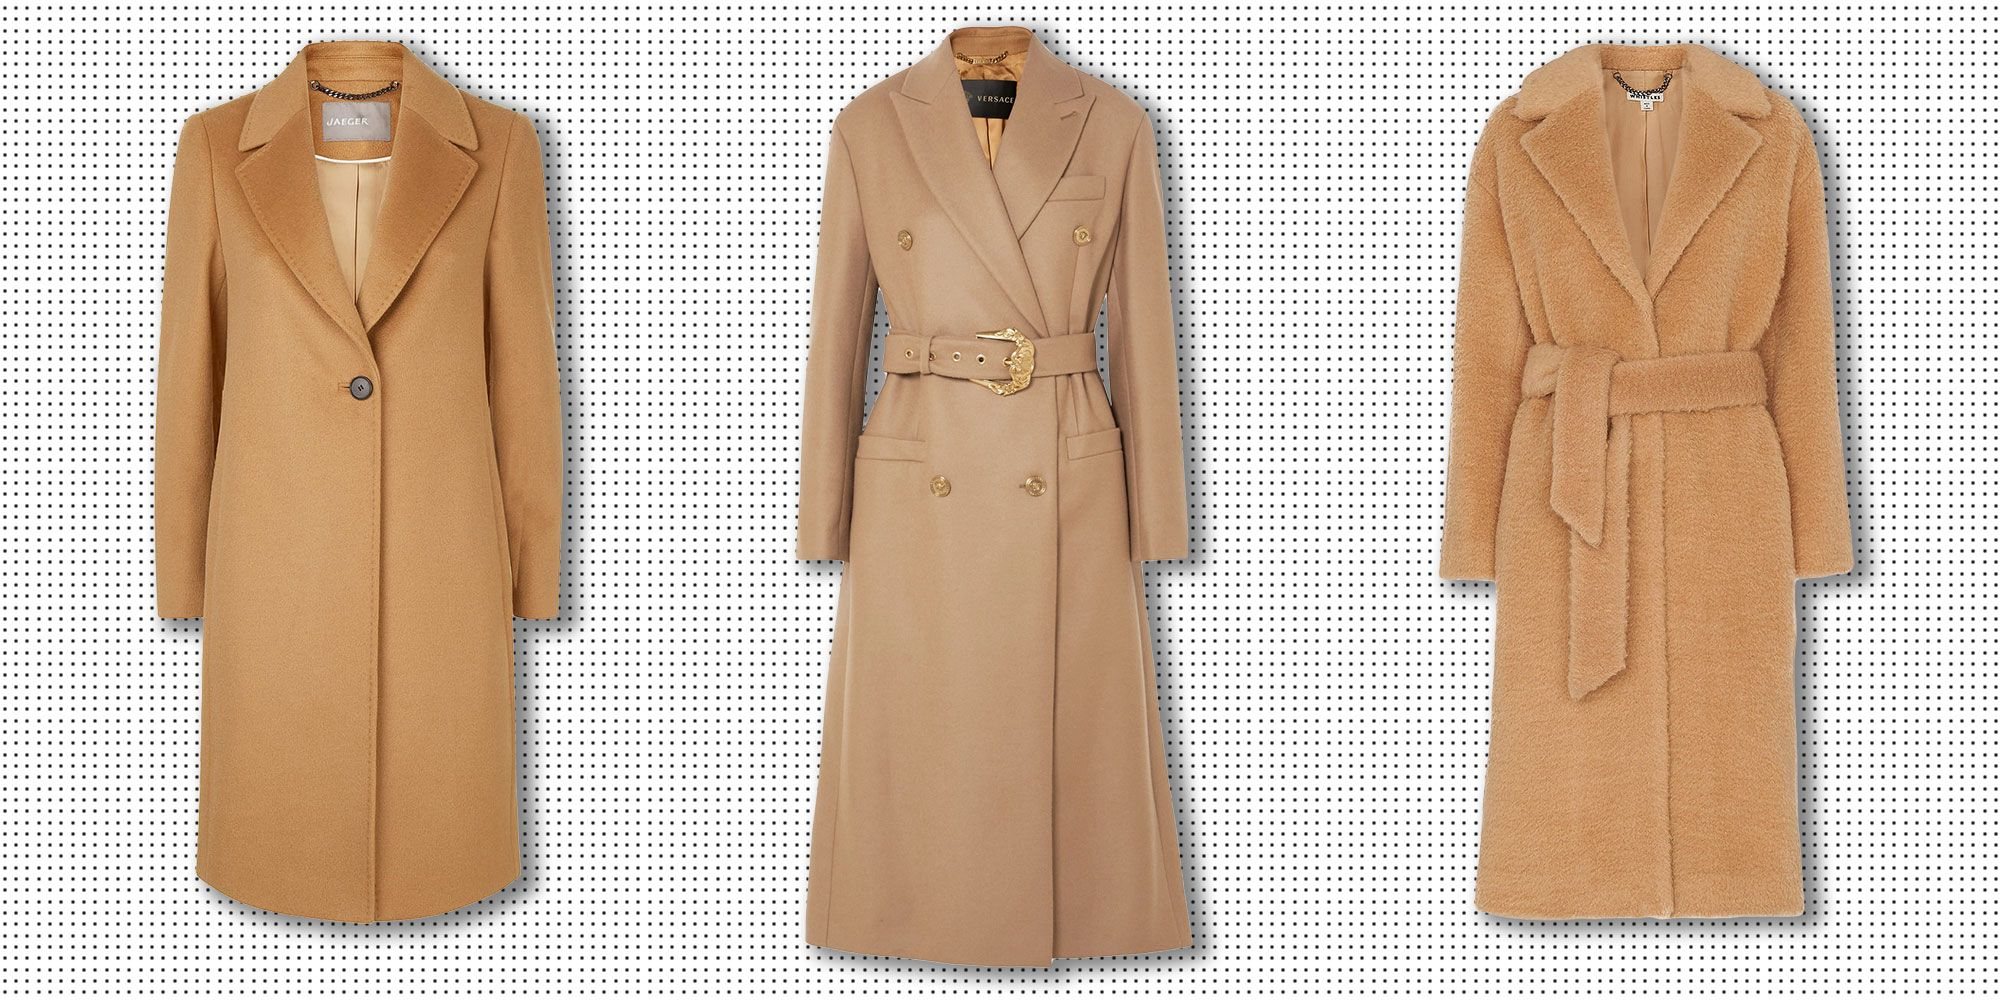 de08d39fcbd 26 Of The Best Camel Coats To Buy Now